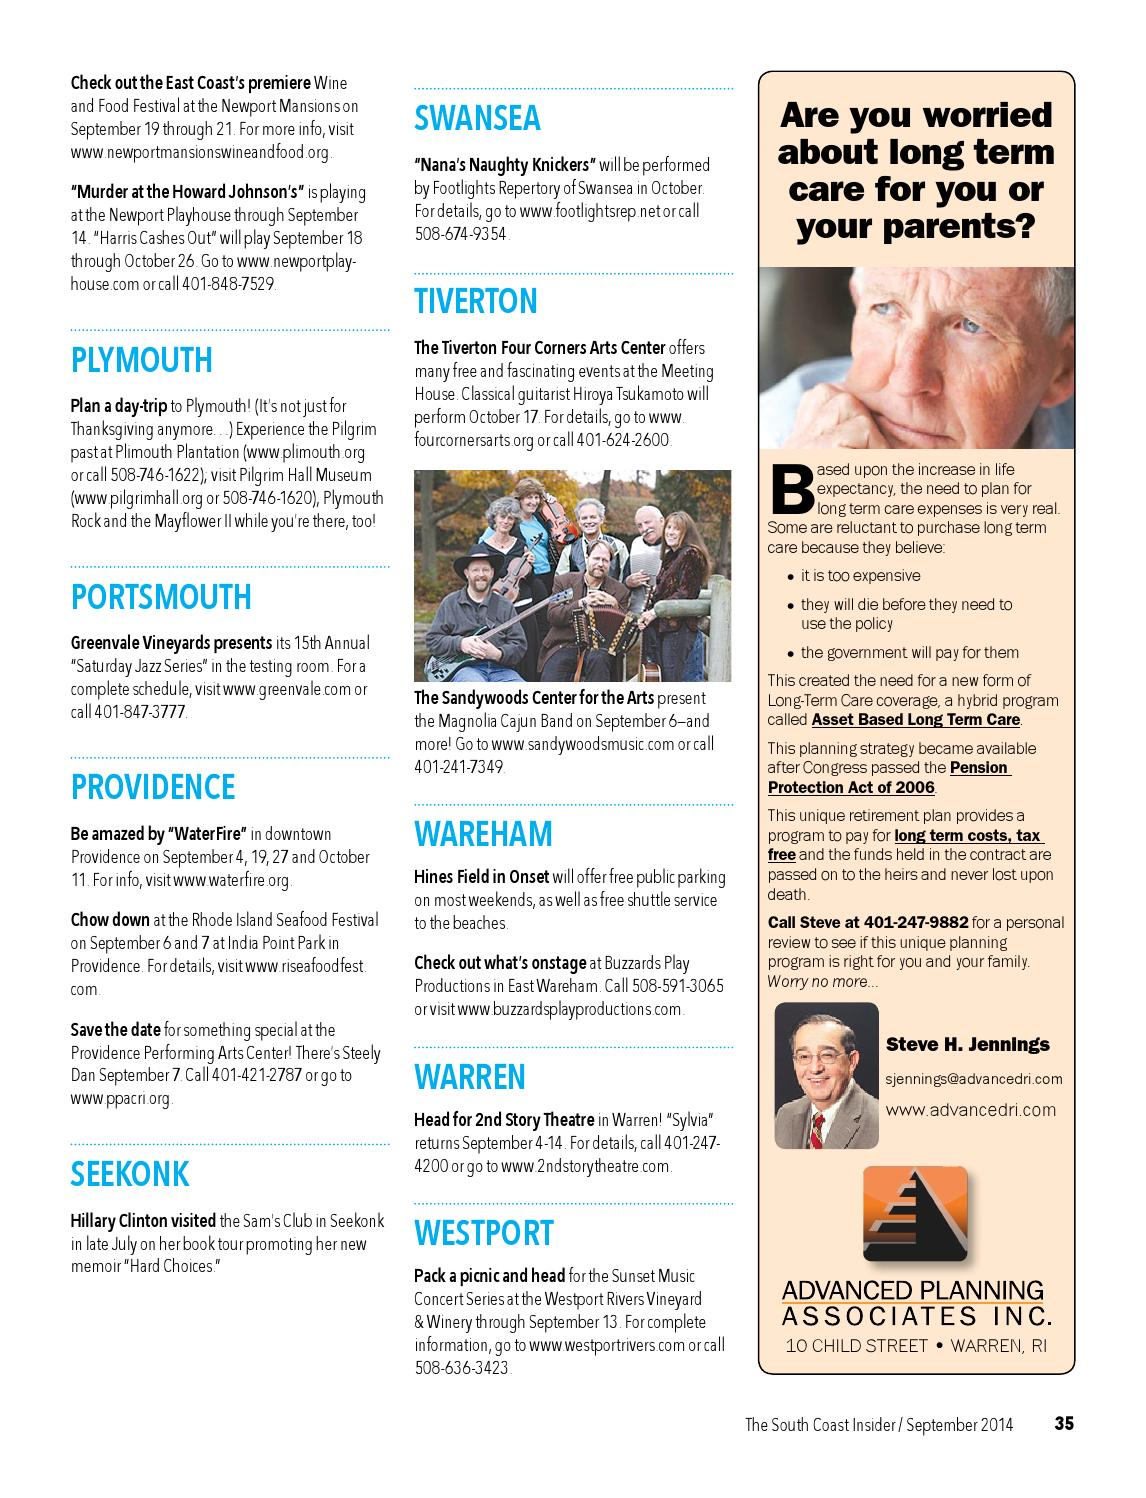 The South Coast Insider - September 2014 by Coastal